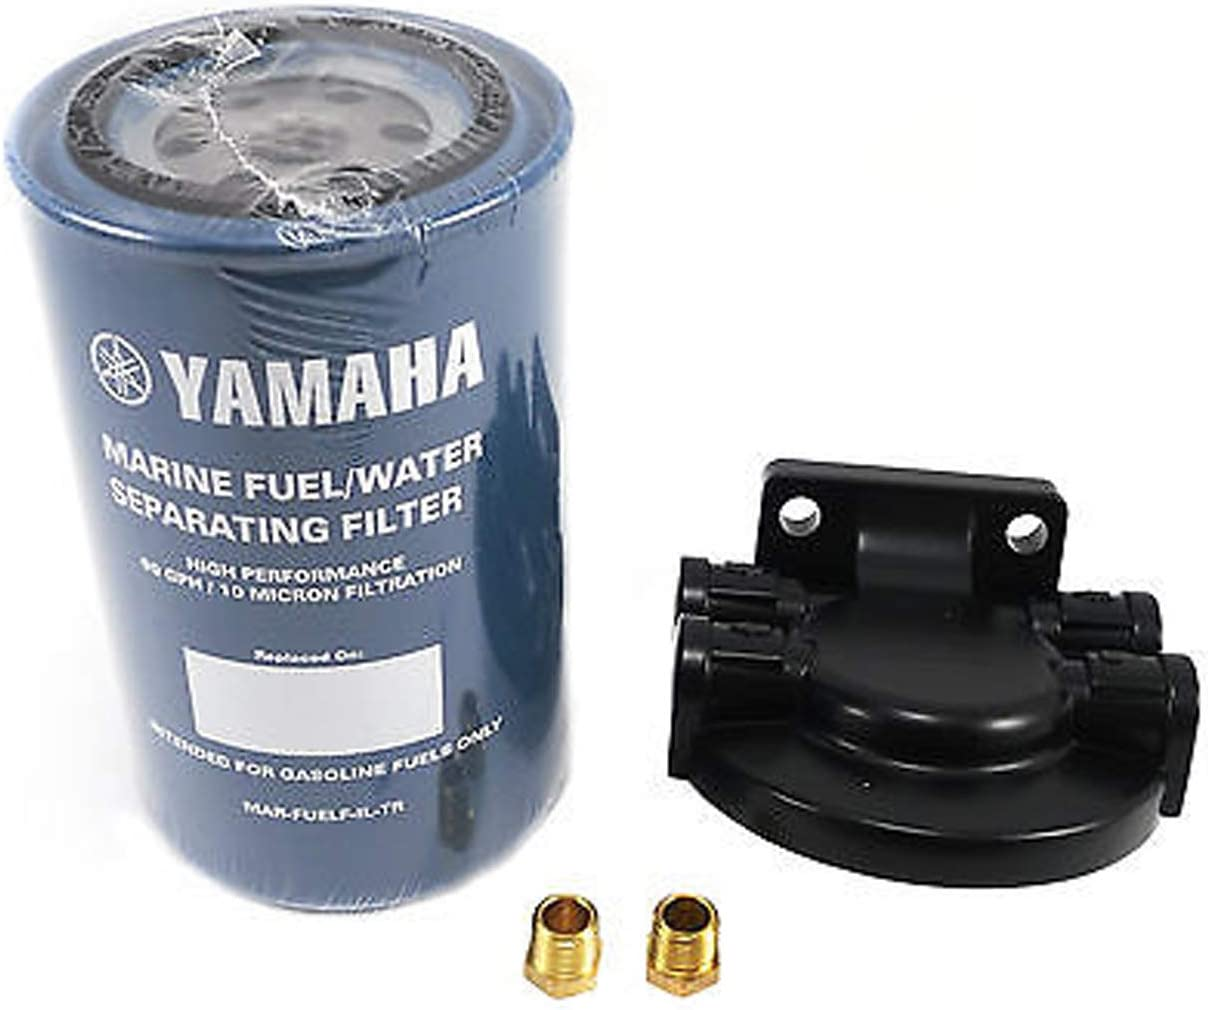 OEM Yamaha Outboard Stainless Fuel//Water Separating Filter Assy MAR-SPRTR-HD-SS